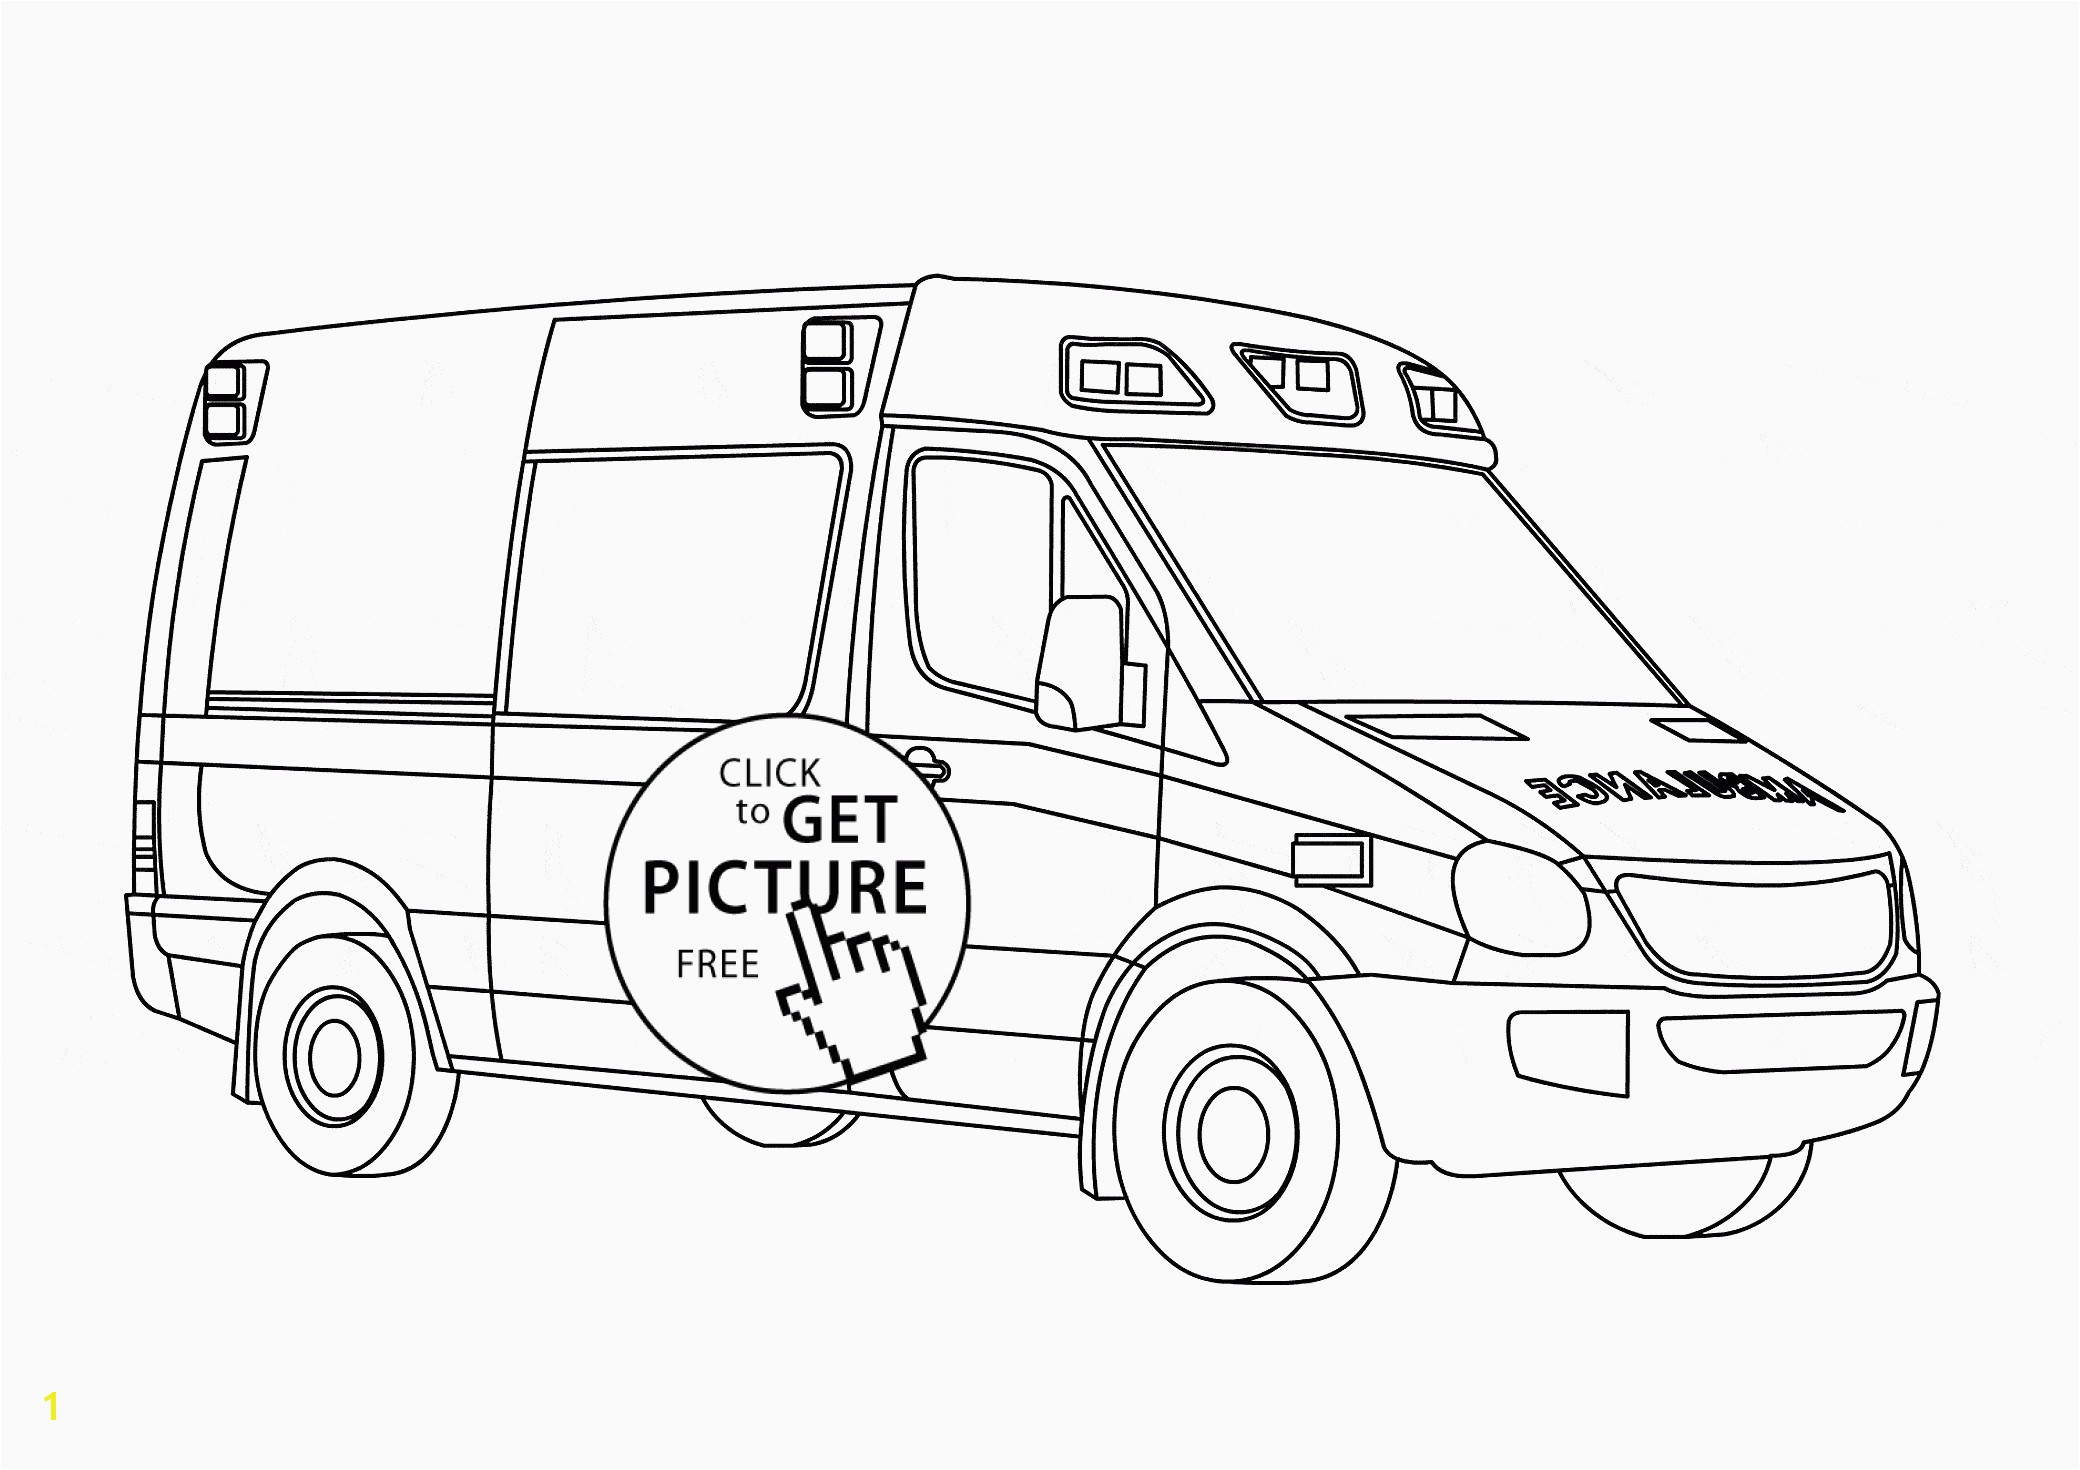 Coloring Pages Airplanes Military Elegant Lego Ambulance Car Coloring Page for Kids Lovely Military Coloring